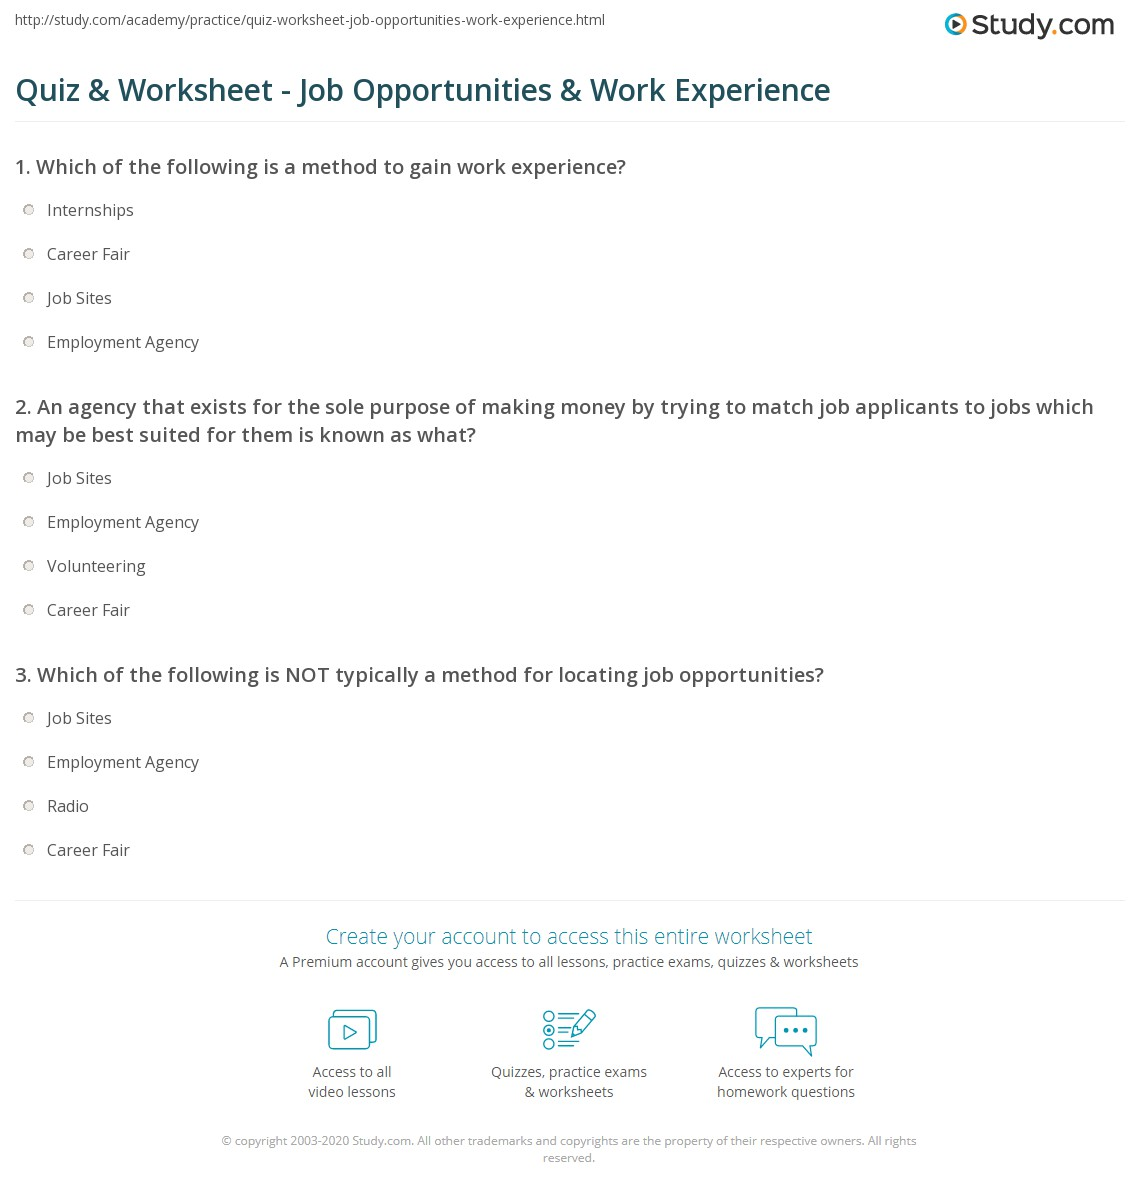 quiz worksheet job opportunities work experience study com print how to identify job opportunities gain work experience worksheet